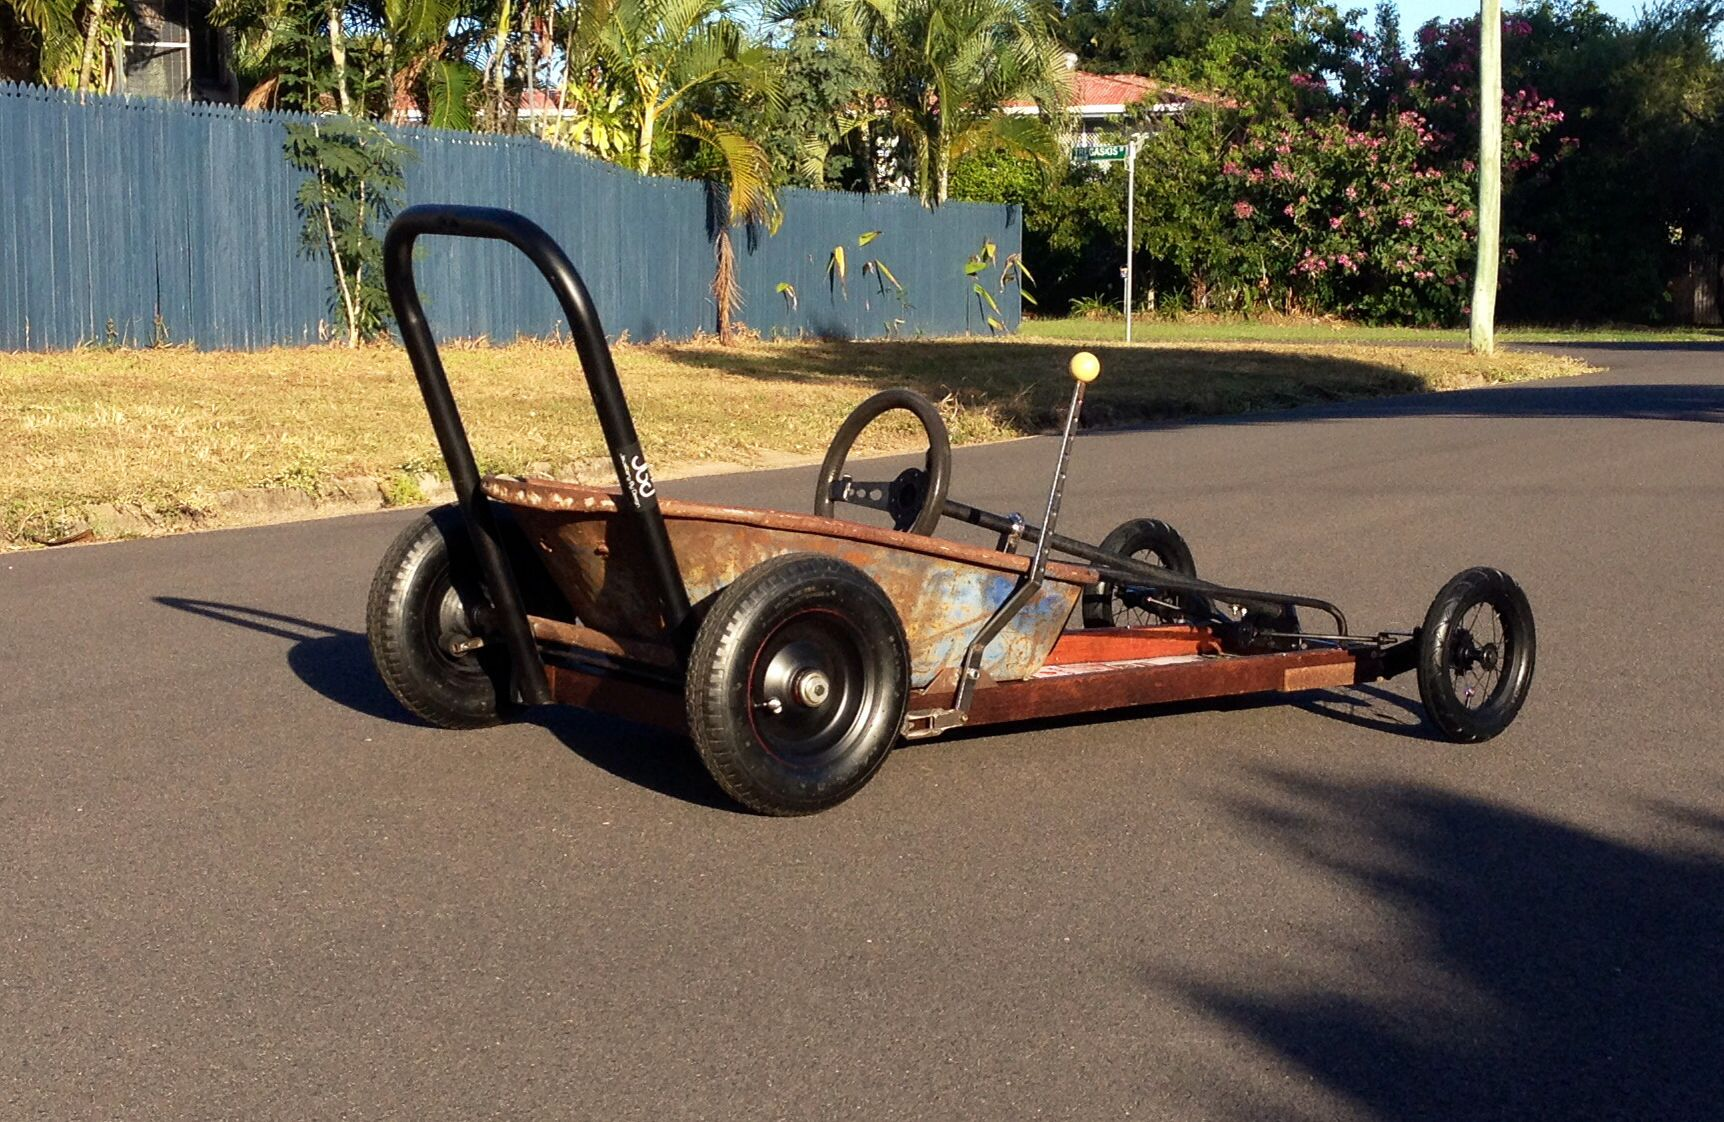 2014 townsville billy cart dash wheel barrow racer slick. Black Bedroom Furniture Sets. Home Design Ideas